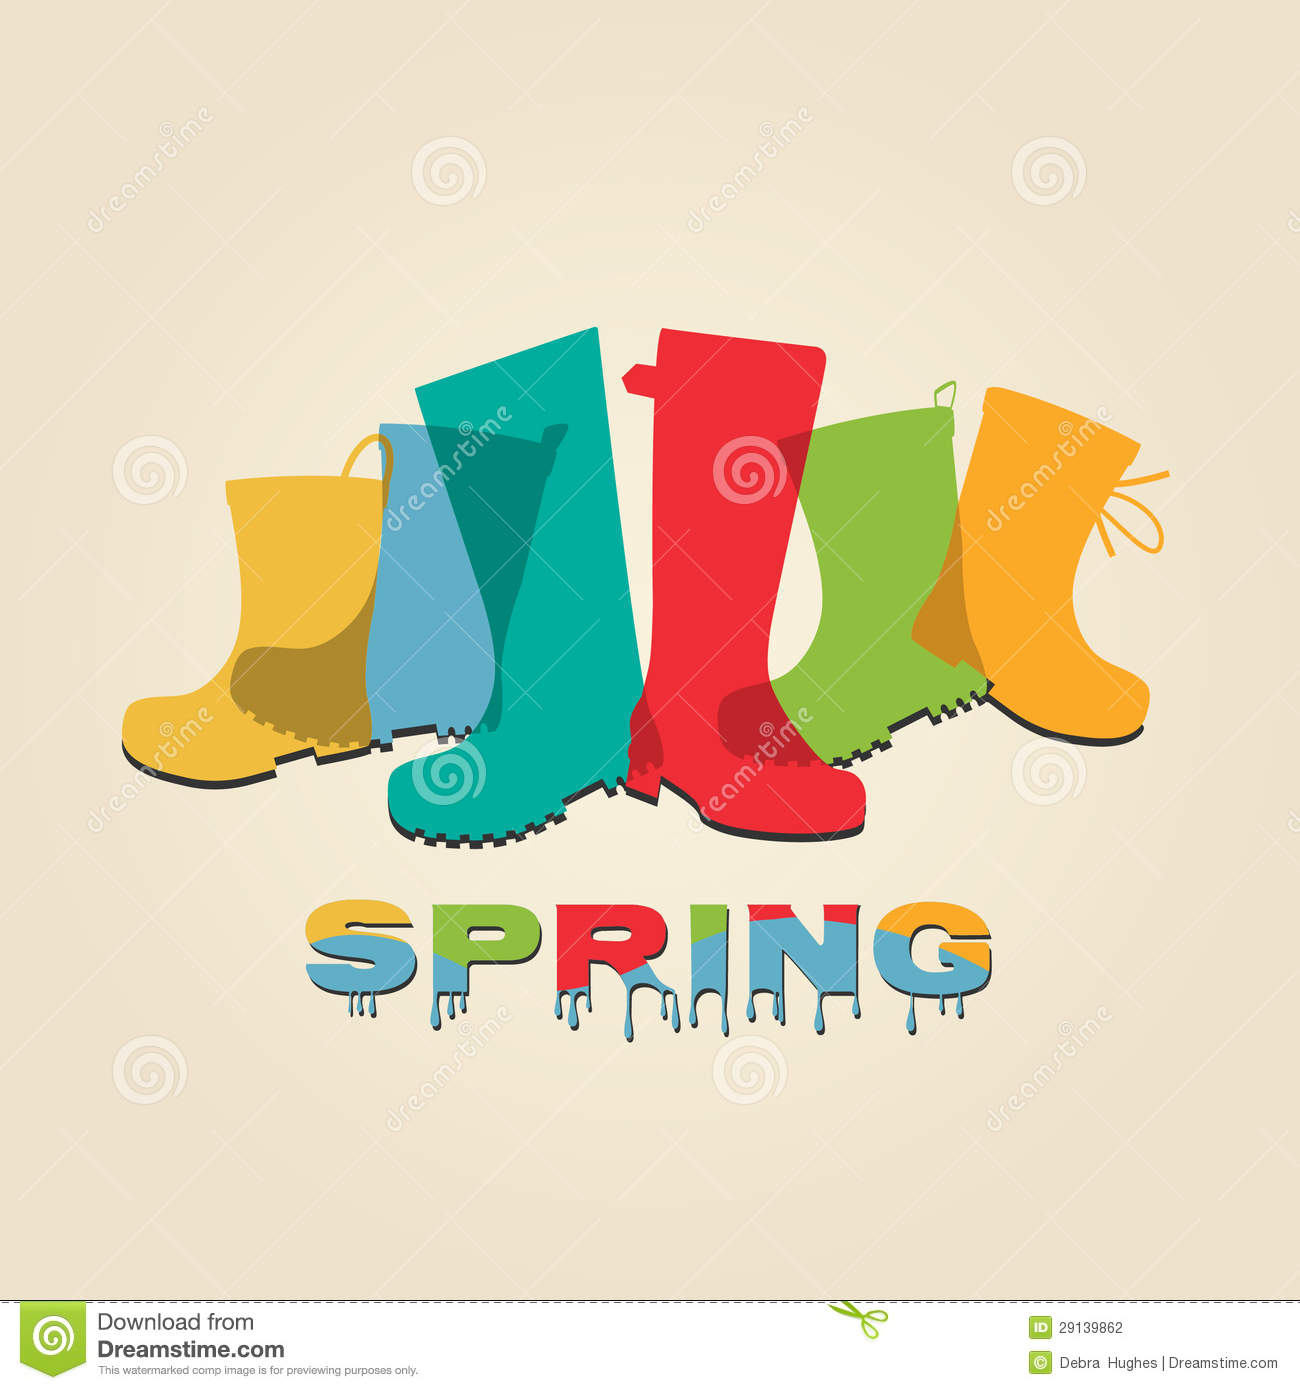 Boots fashion pic boots clip art - Boots Colorful Fashion